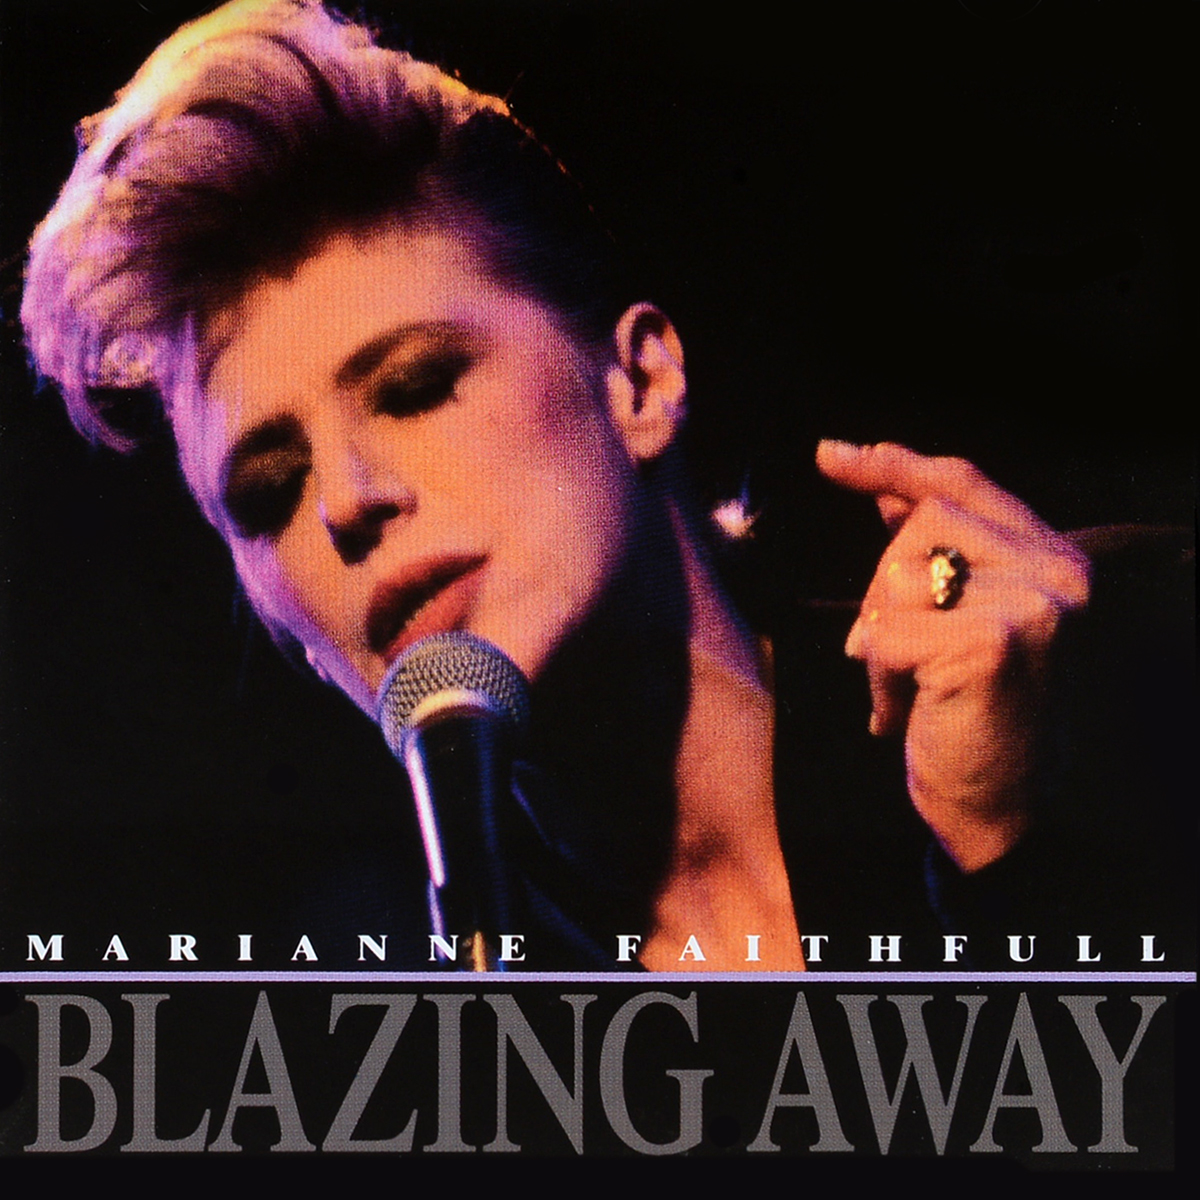 Мэриэнн Фэйтфулл Marianne Faithfull. Blazing Away marianne faithfull marianne faithfull broken english